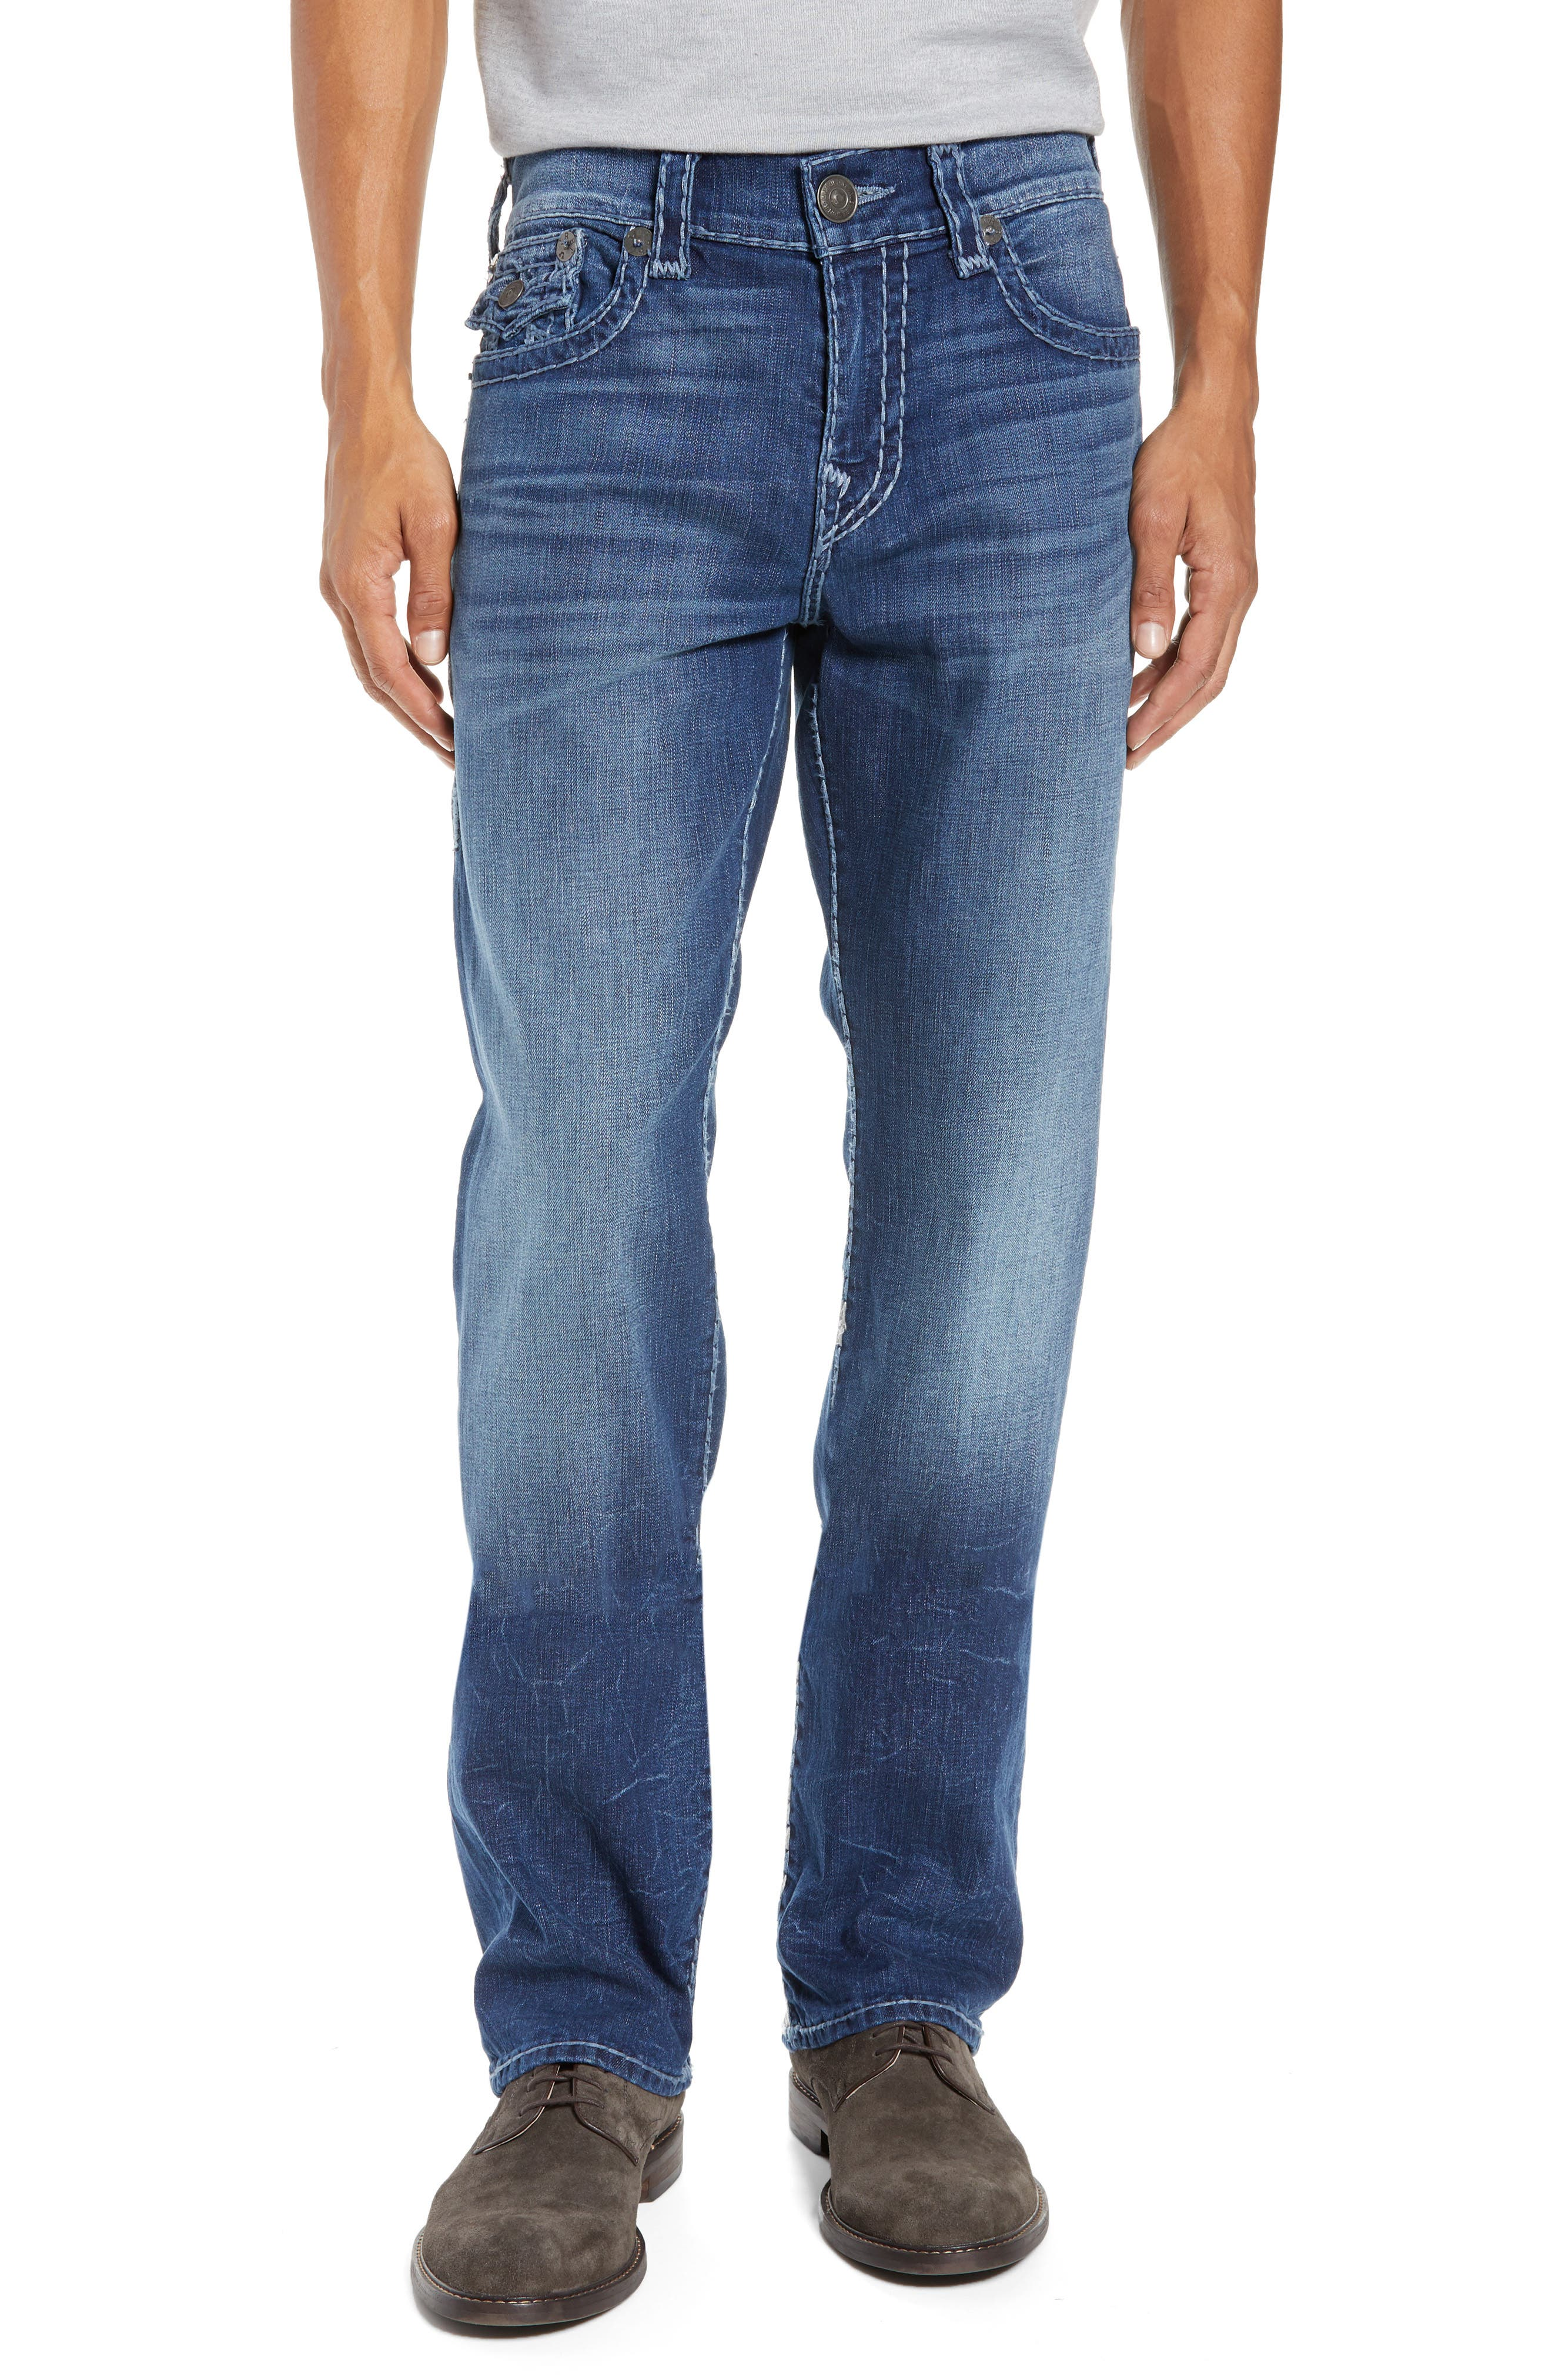 Ricky Relaxed Fit Jeans,                             Main thumbnail 1, color,                             HIGH FREQUENCY